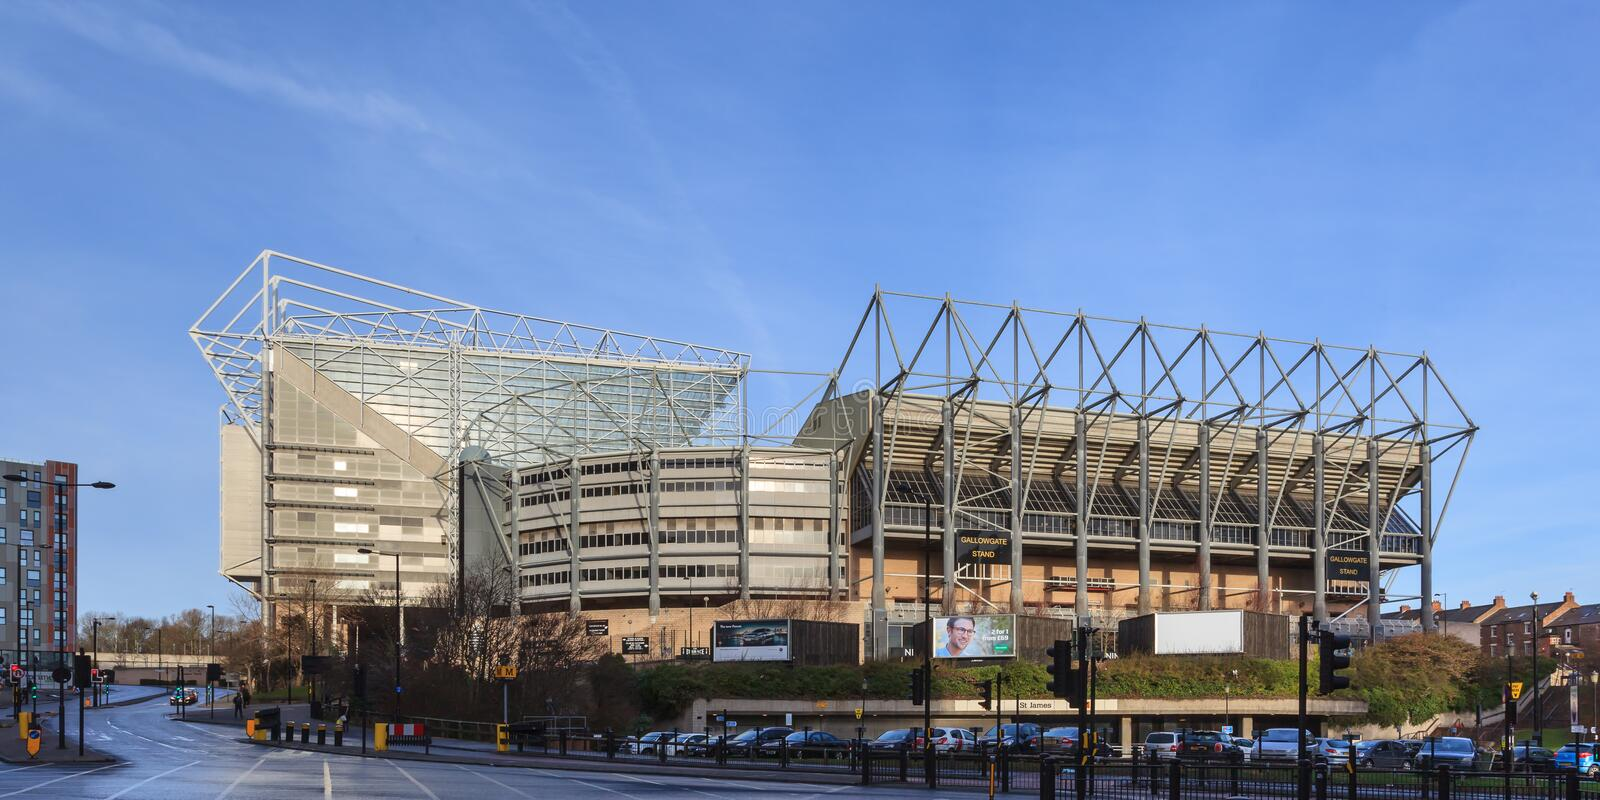 St James' Park royalty free stock image